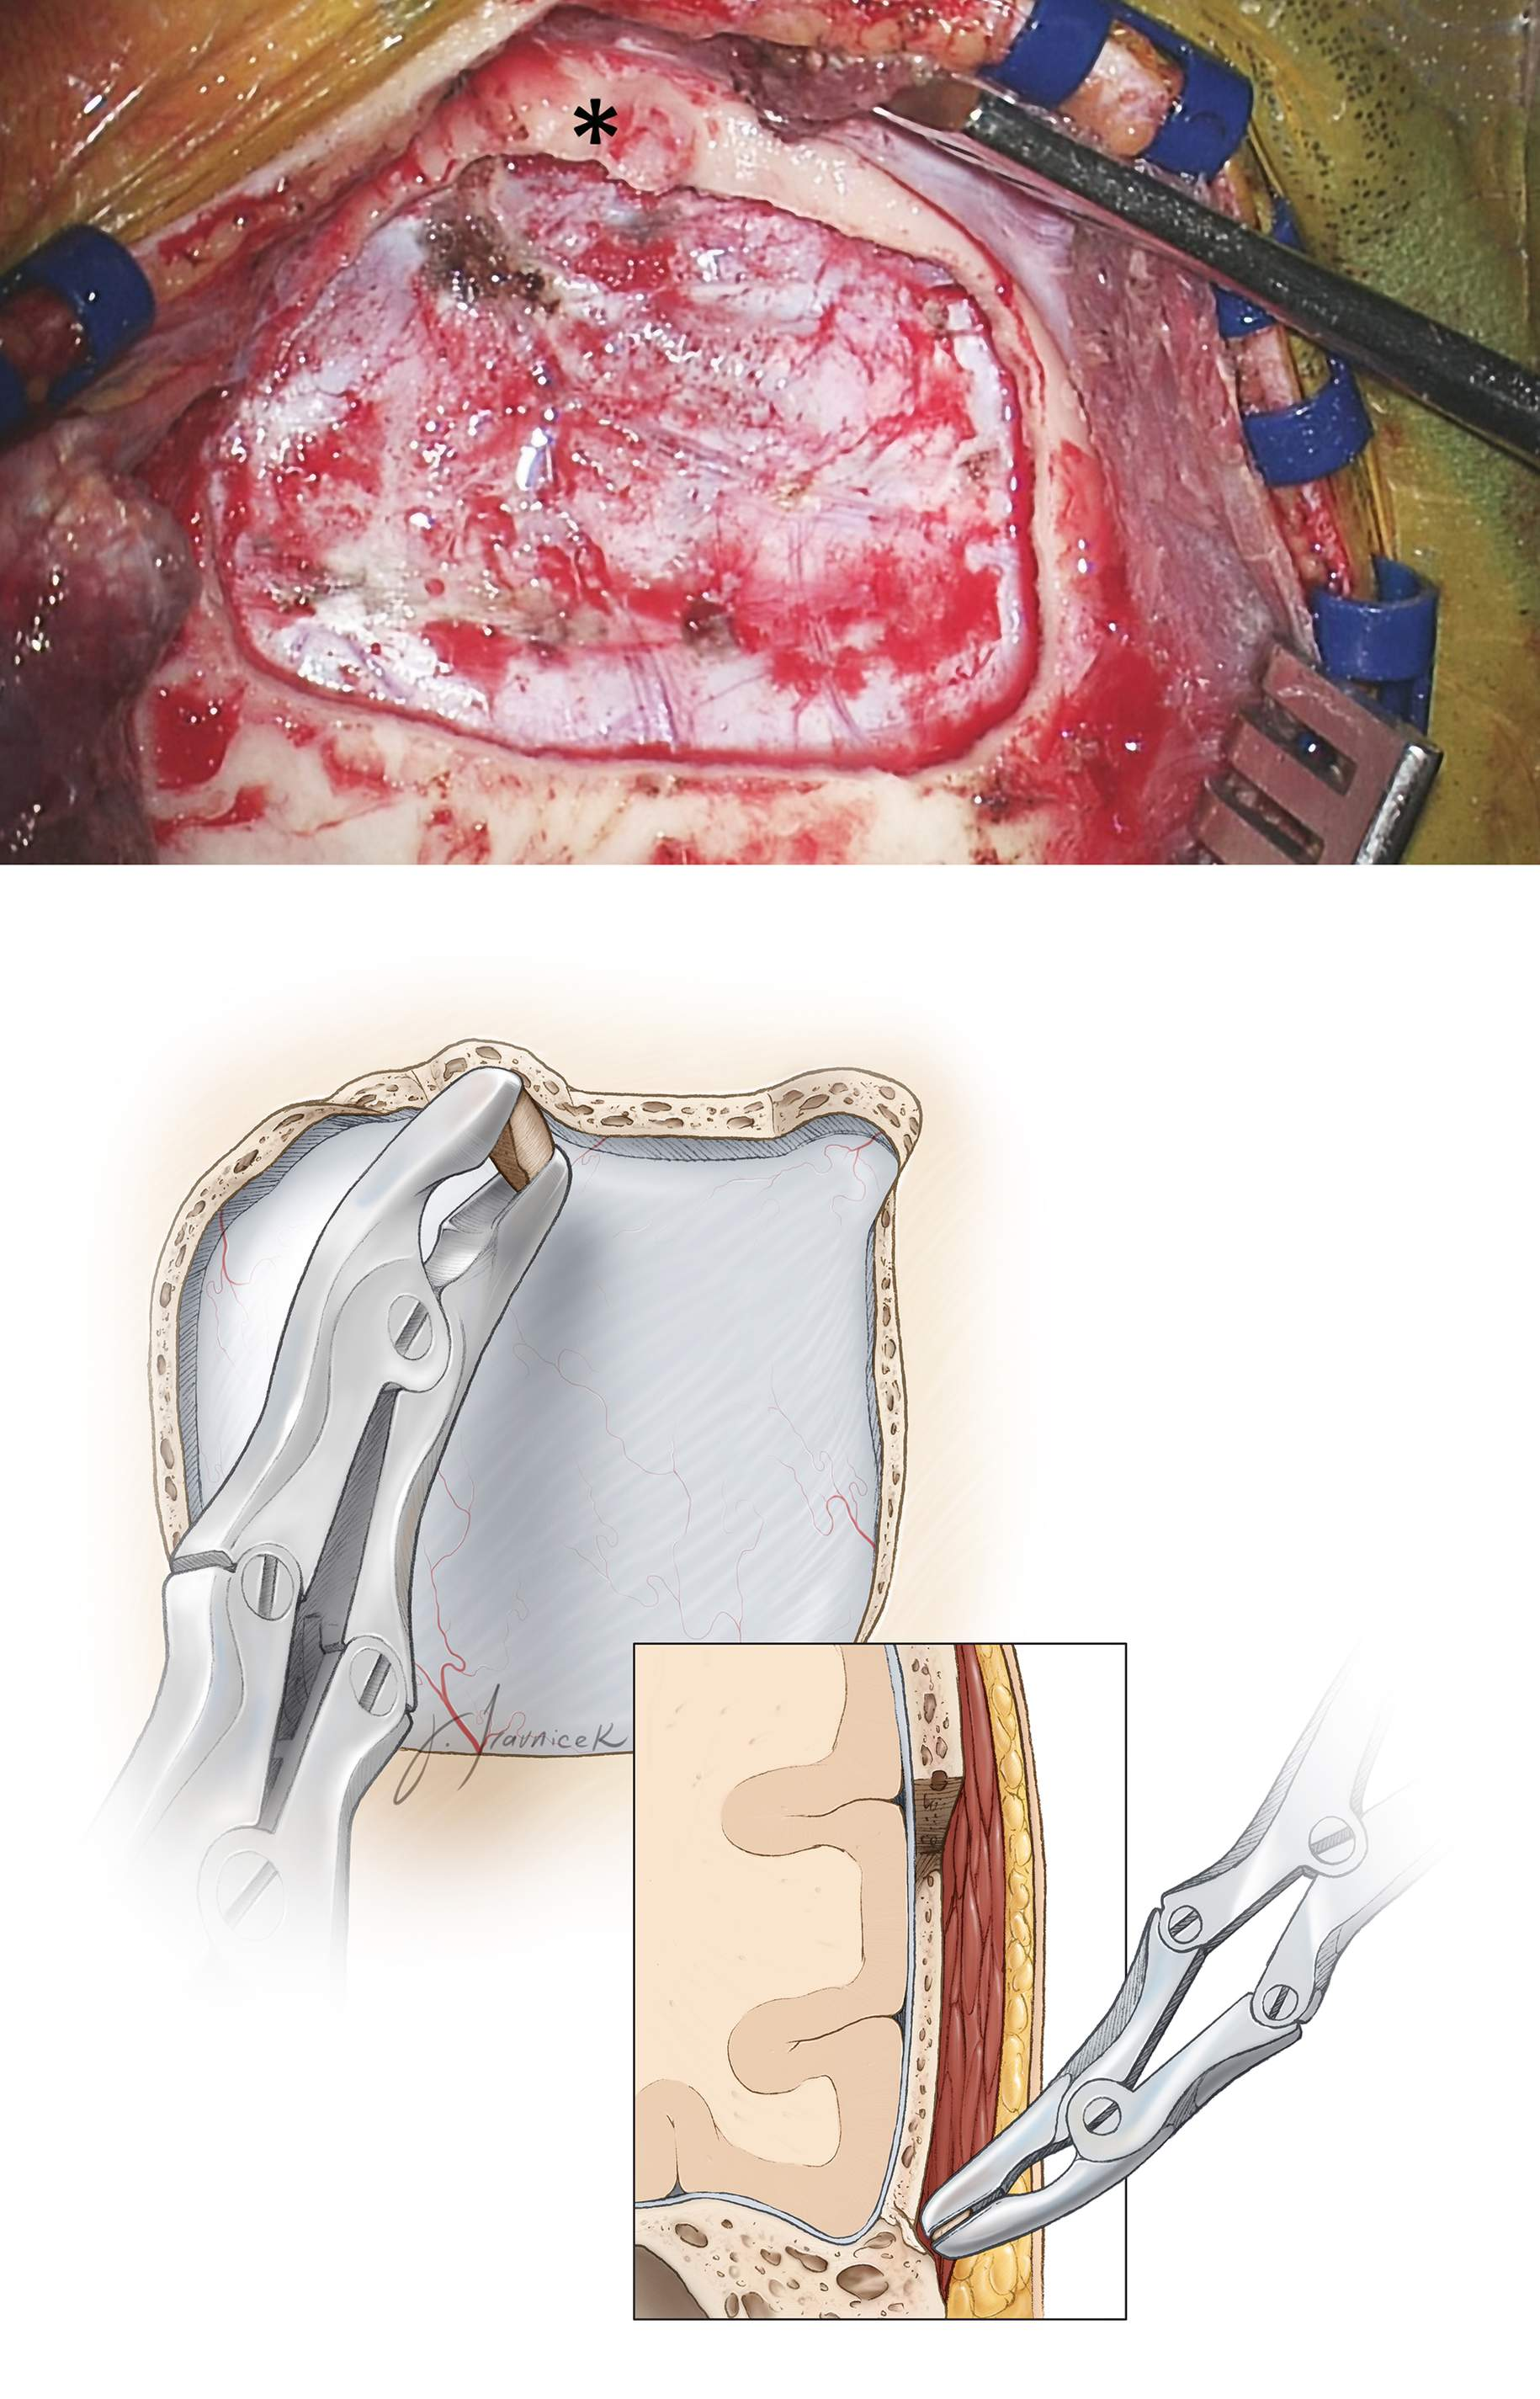 Figure 6: The craniotomy in relation to the root of zygoma (*) is evident (top). Most often, the inferior edge of the craniotomy leaves a strip of overhanging bone, obscuring a clear operative path toward the middle fossa floor. Subsequently, a Leksell rongeur may be used to remove this overhanging bone until the edge of the craniotomy is at the level of the floor (bottom). A handheld drill further assists with this task.